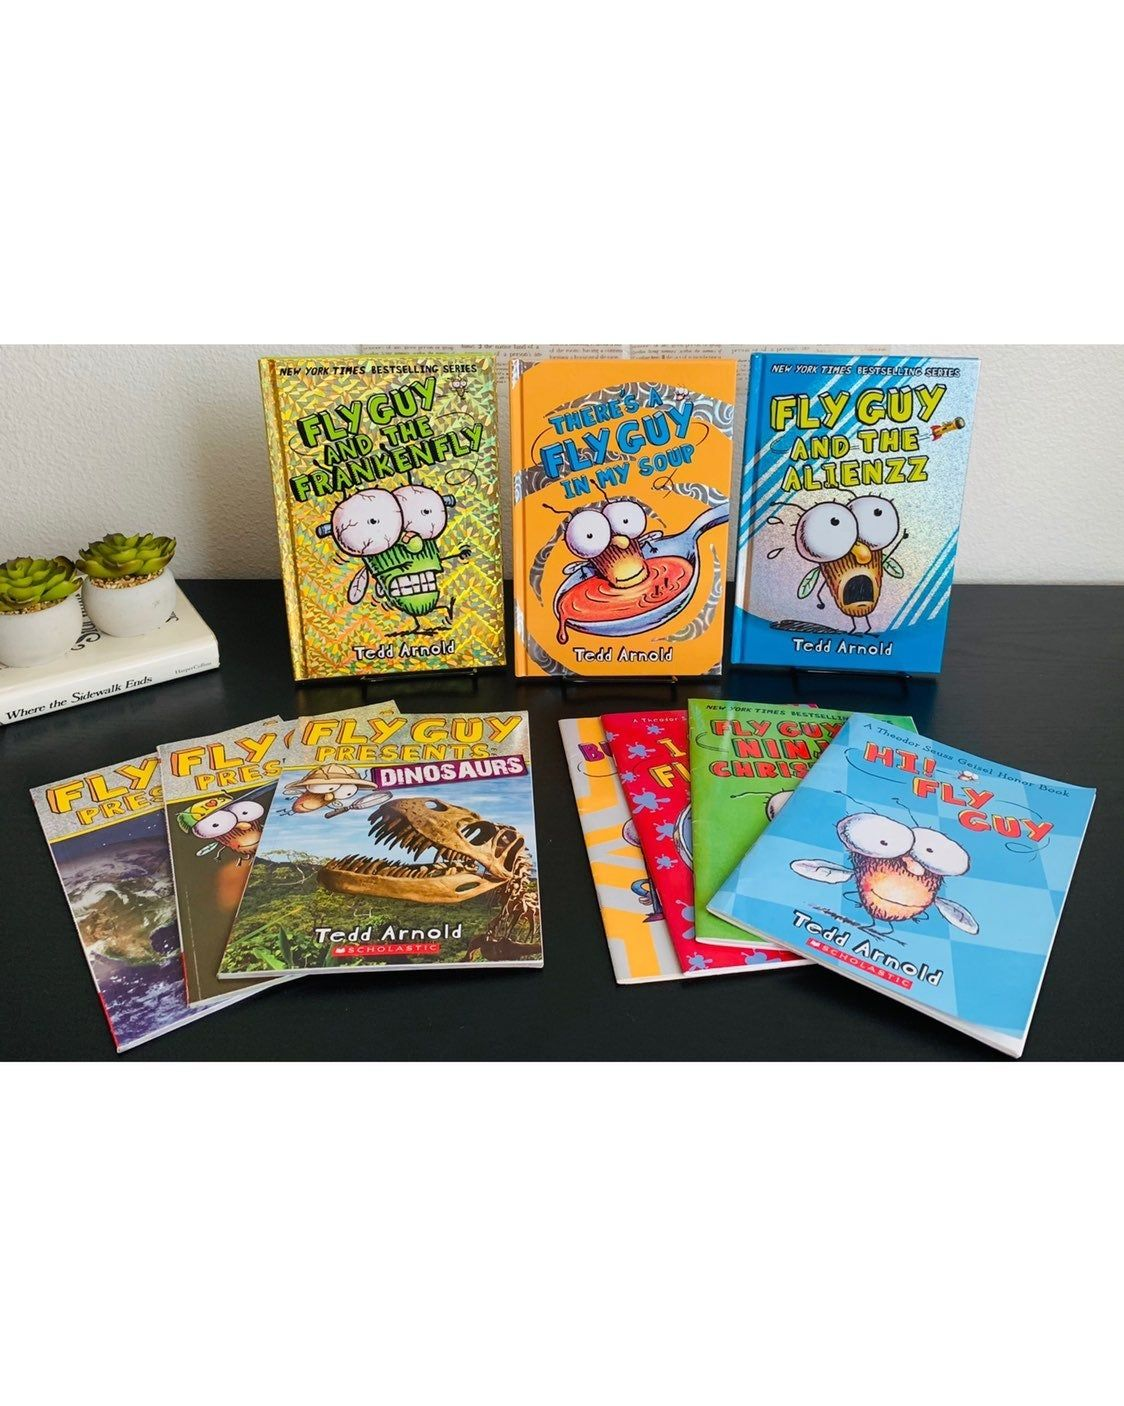 This Bundle Includes Ten Fly Guy Books By Tedd Arnold